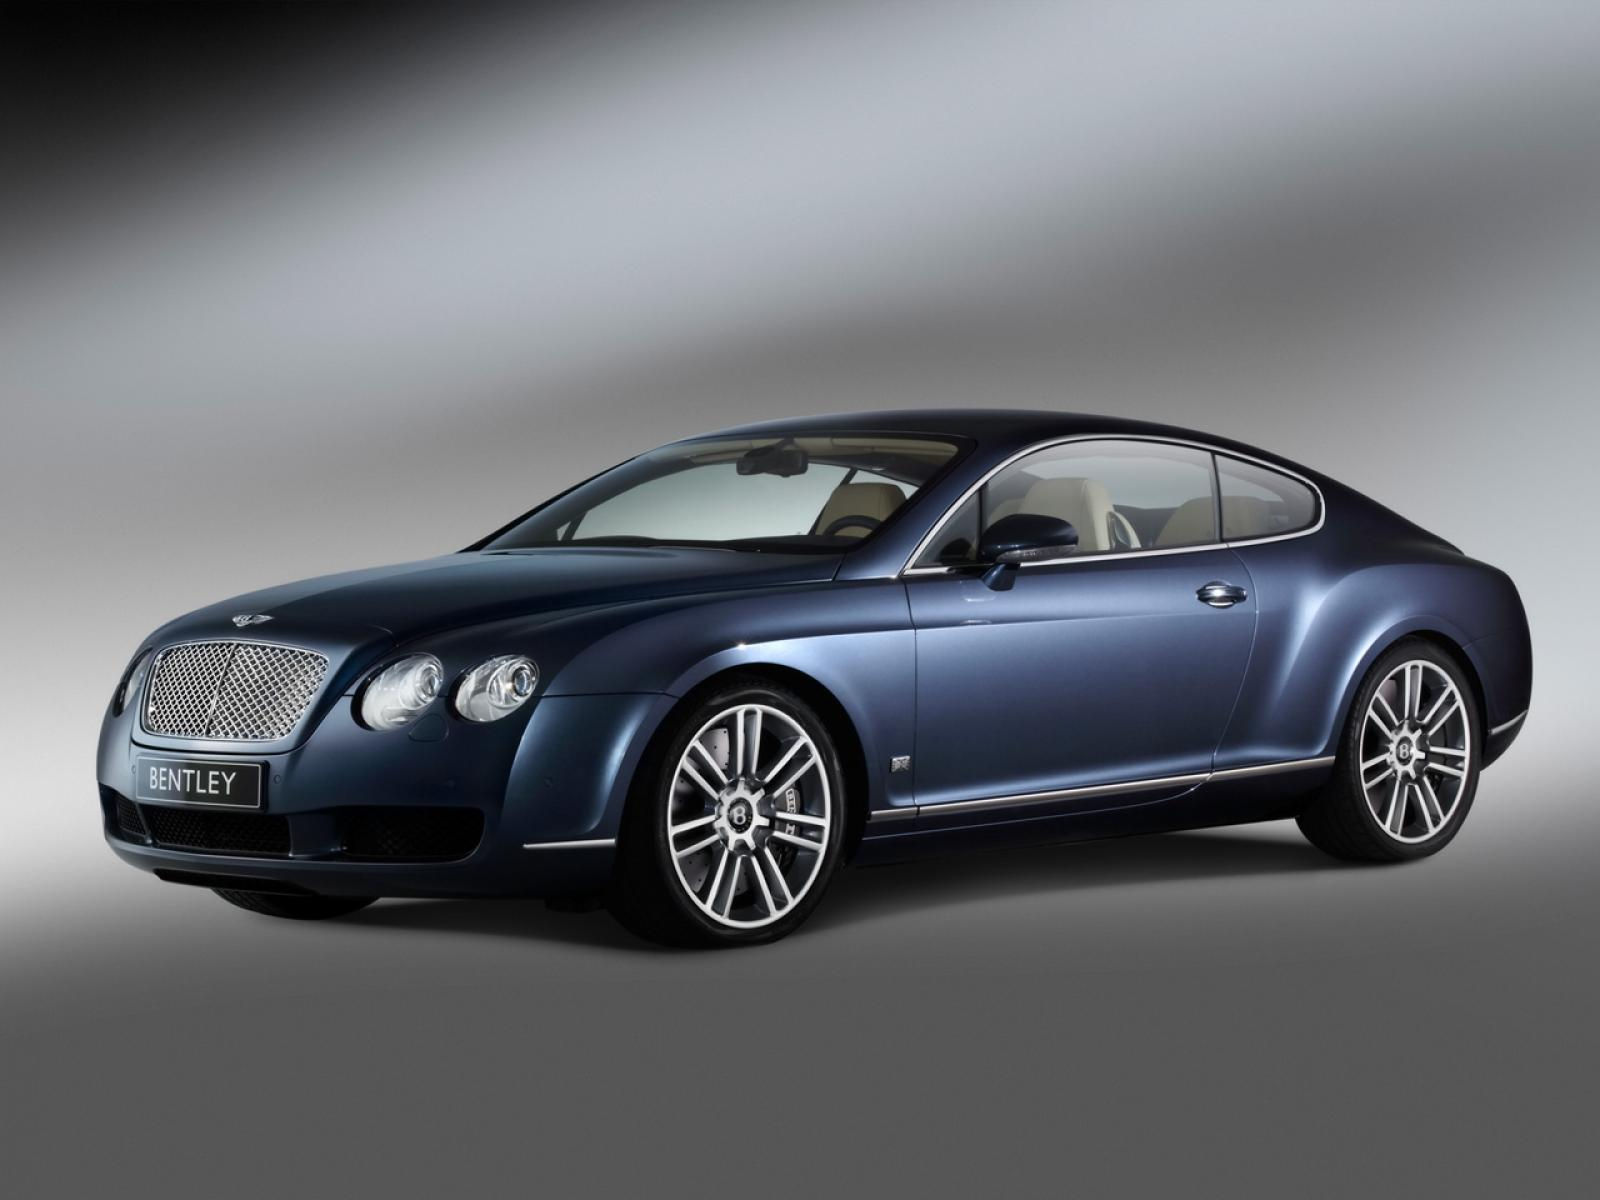 2007 Bentley Continental GTC Information and photos ZombieDrive